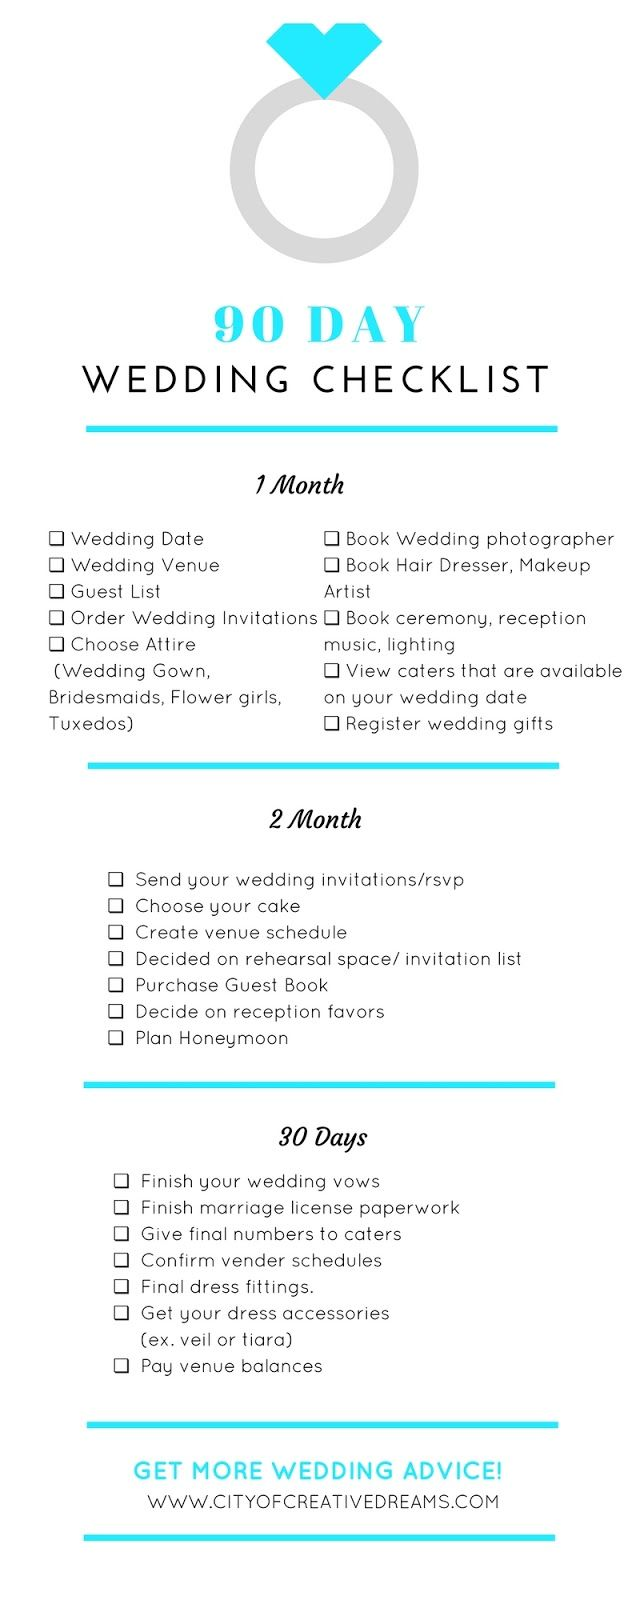 How to Plan A Wedding in 90 Days | City of Creative Dreams  #wedding #weddingplanning #weddingtips #weddingideas #weddinginspiration